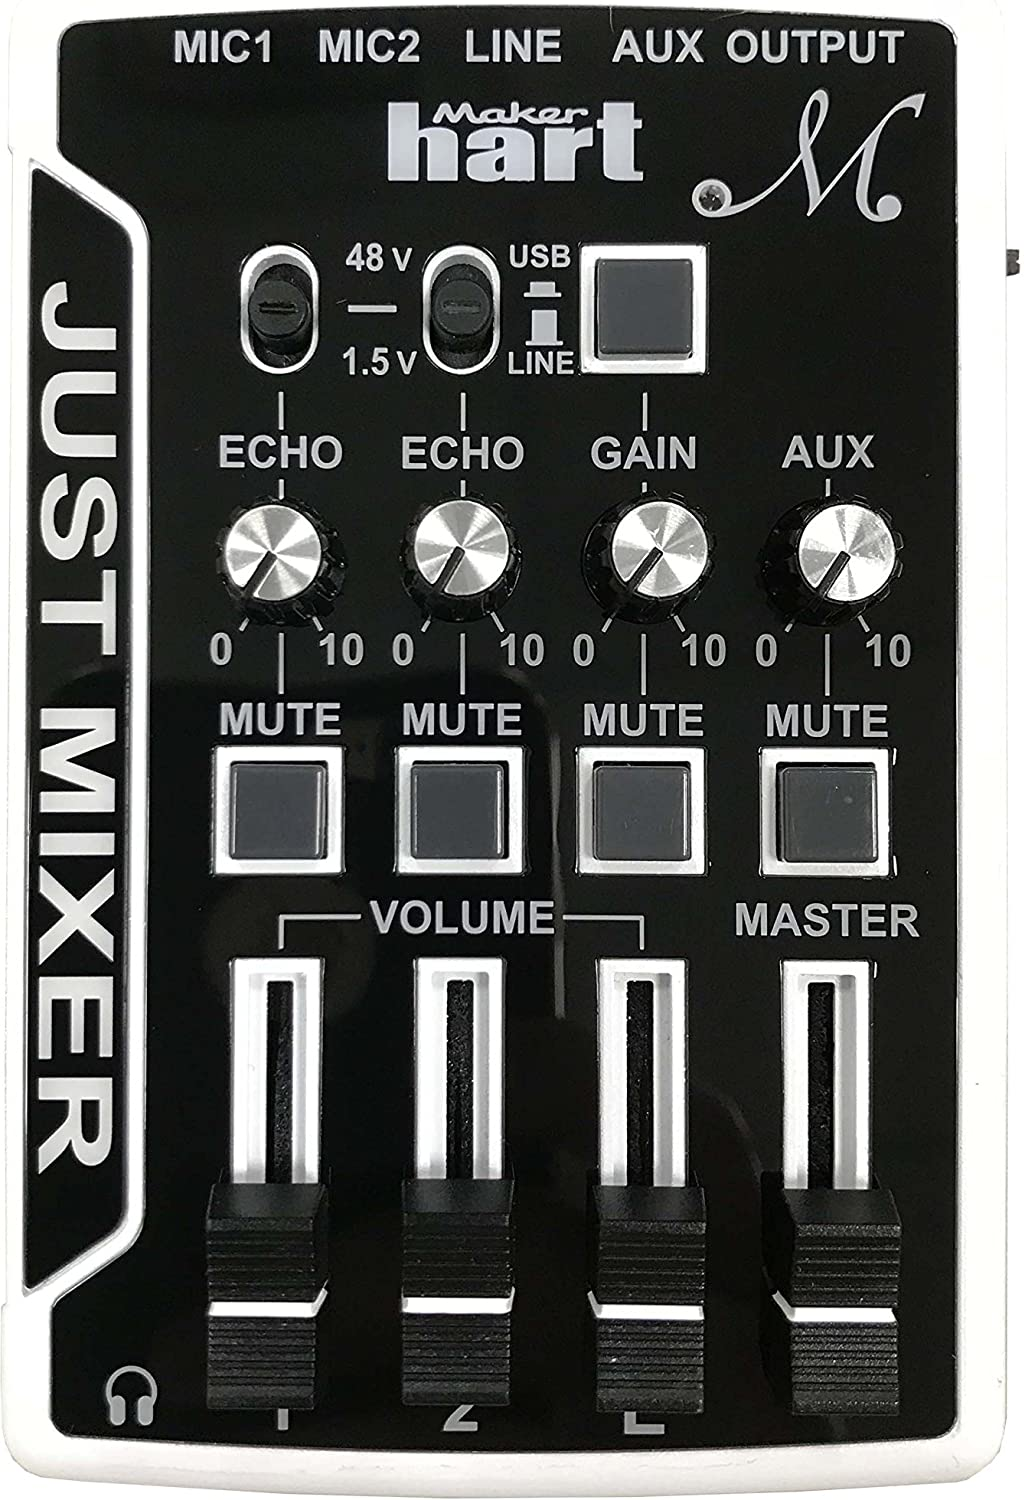 Maker Hart Just Mixer M - Mini Microphone Mixer with Preamp for Phantom Power, USB Audio Input and Output (Premium Package, Black)